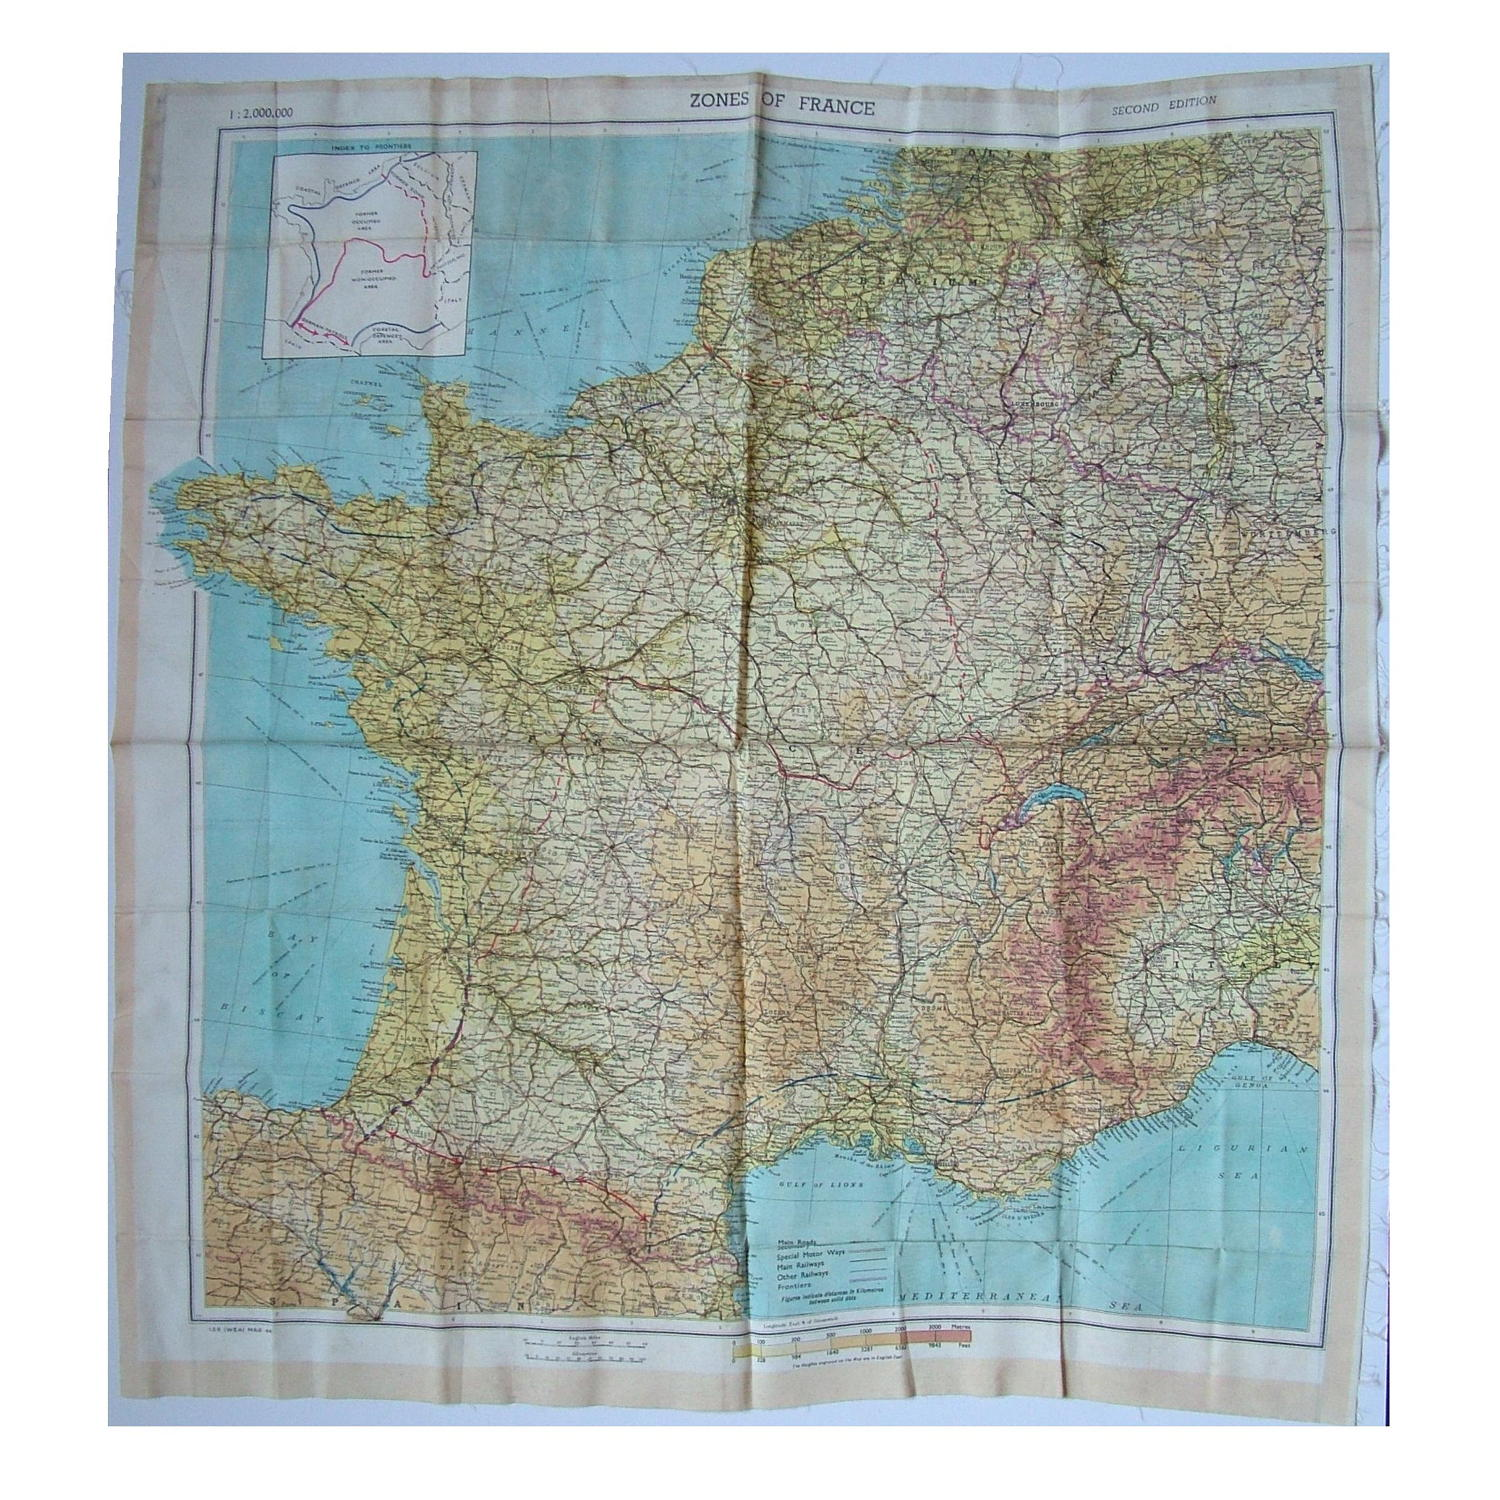 RAF escape & evasion map, Zones of France